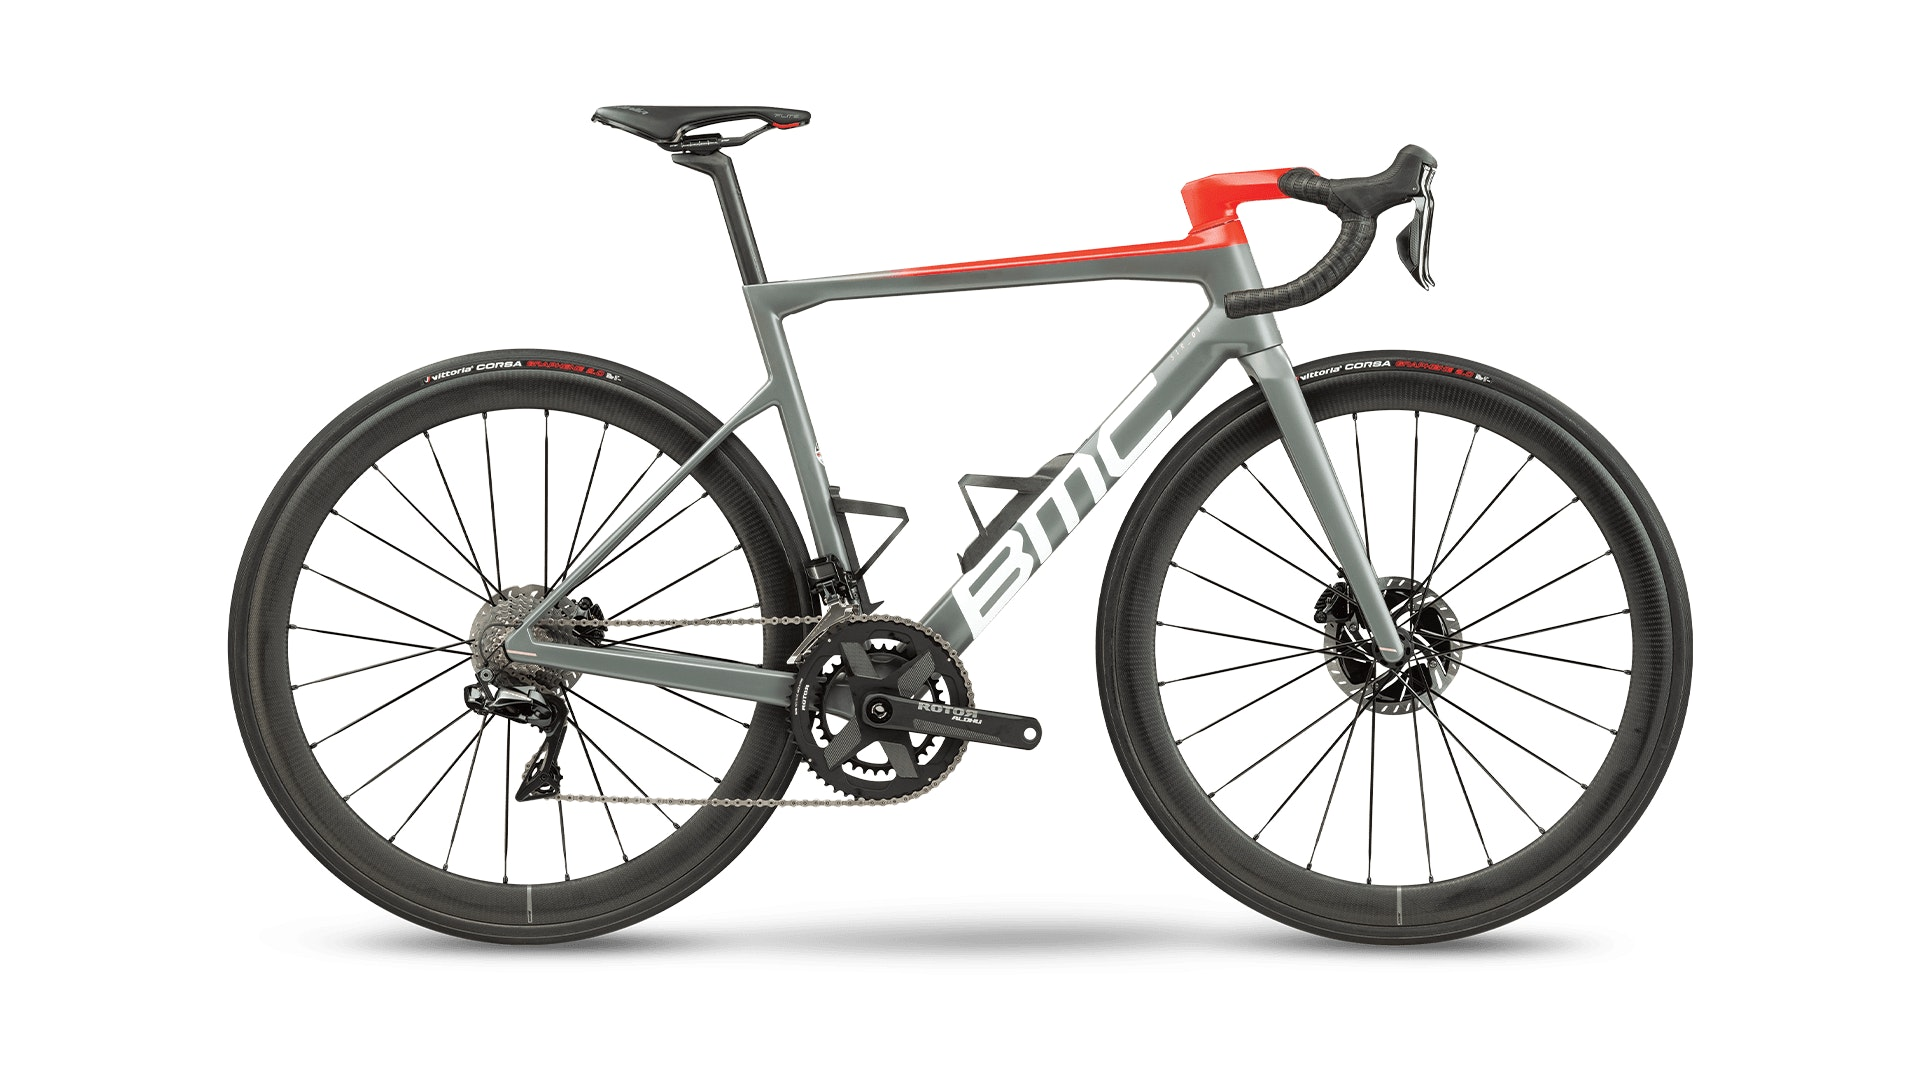 2021 BMC TEAMMACHINE SLR01 TWO built by Bike Force Docklands